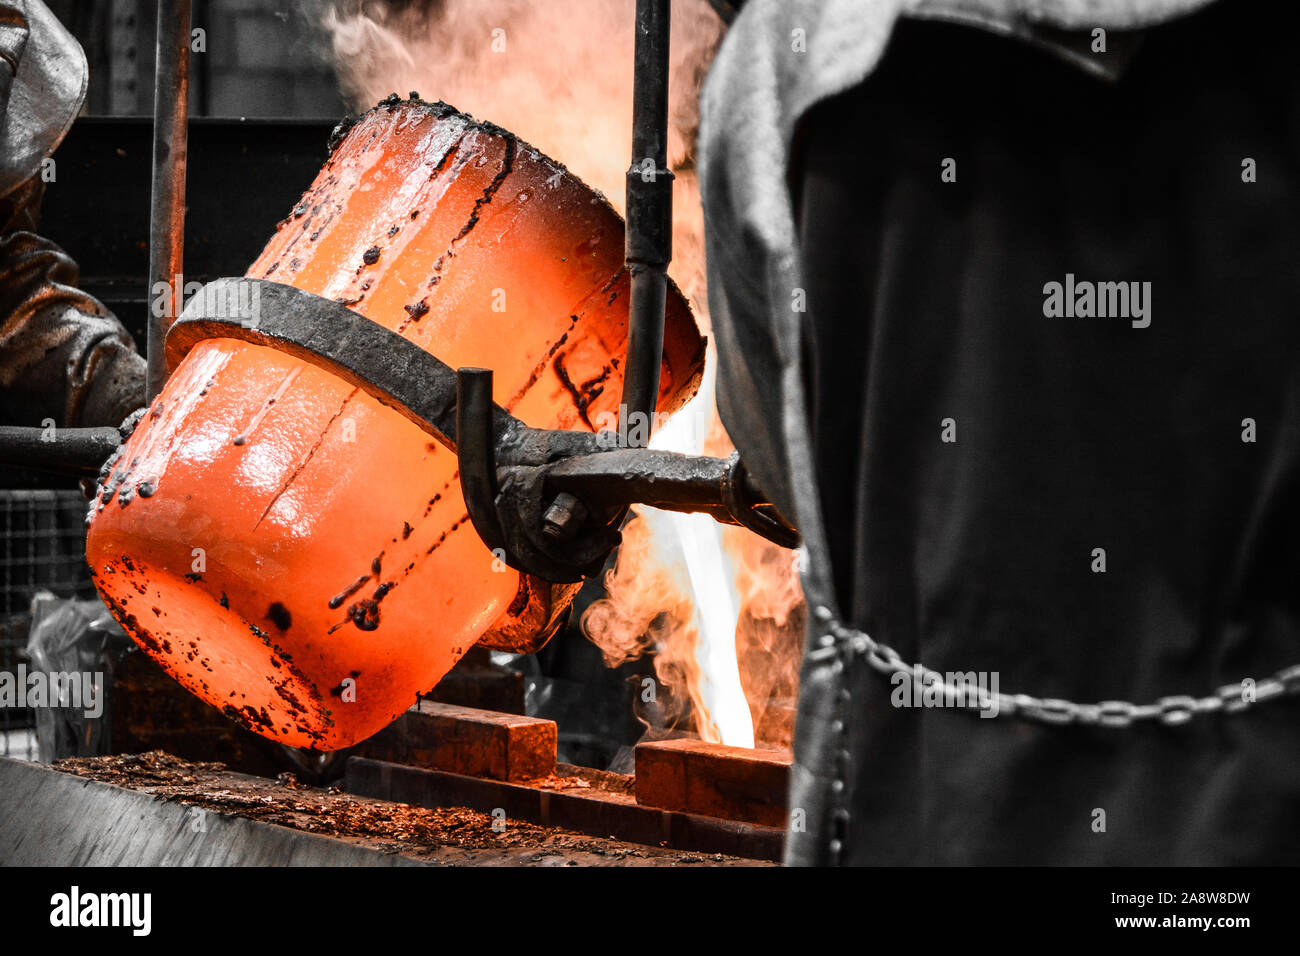 In a foundry workshop. The molten metal is poured into a mold from a crucible maneuvered by two workers Stock Photo